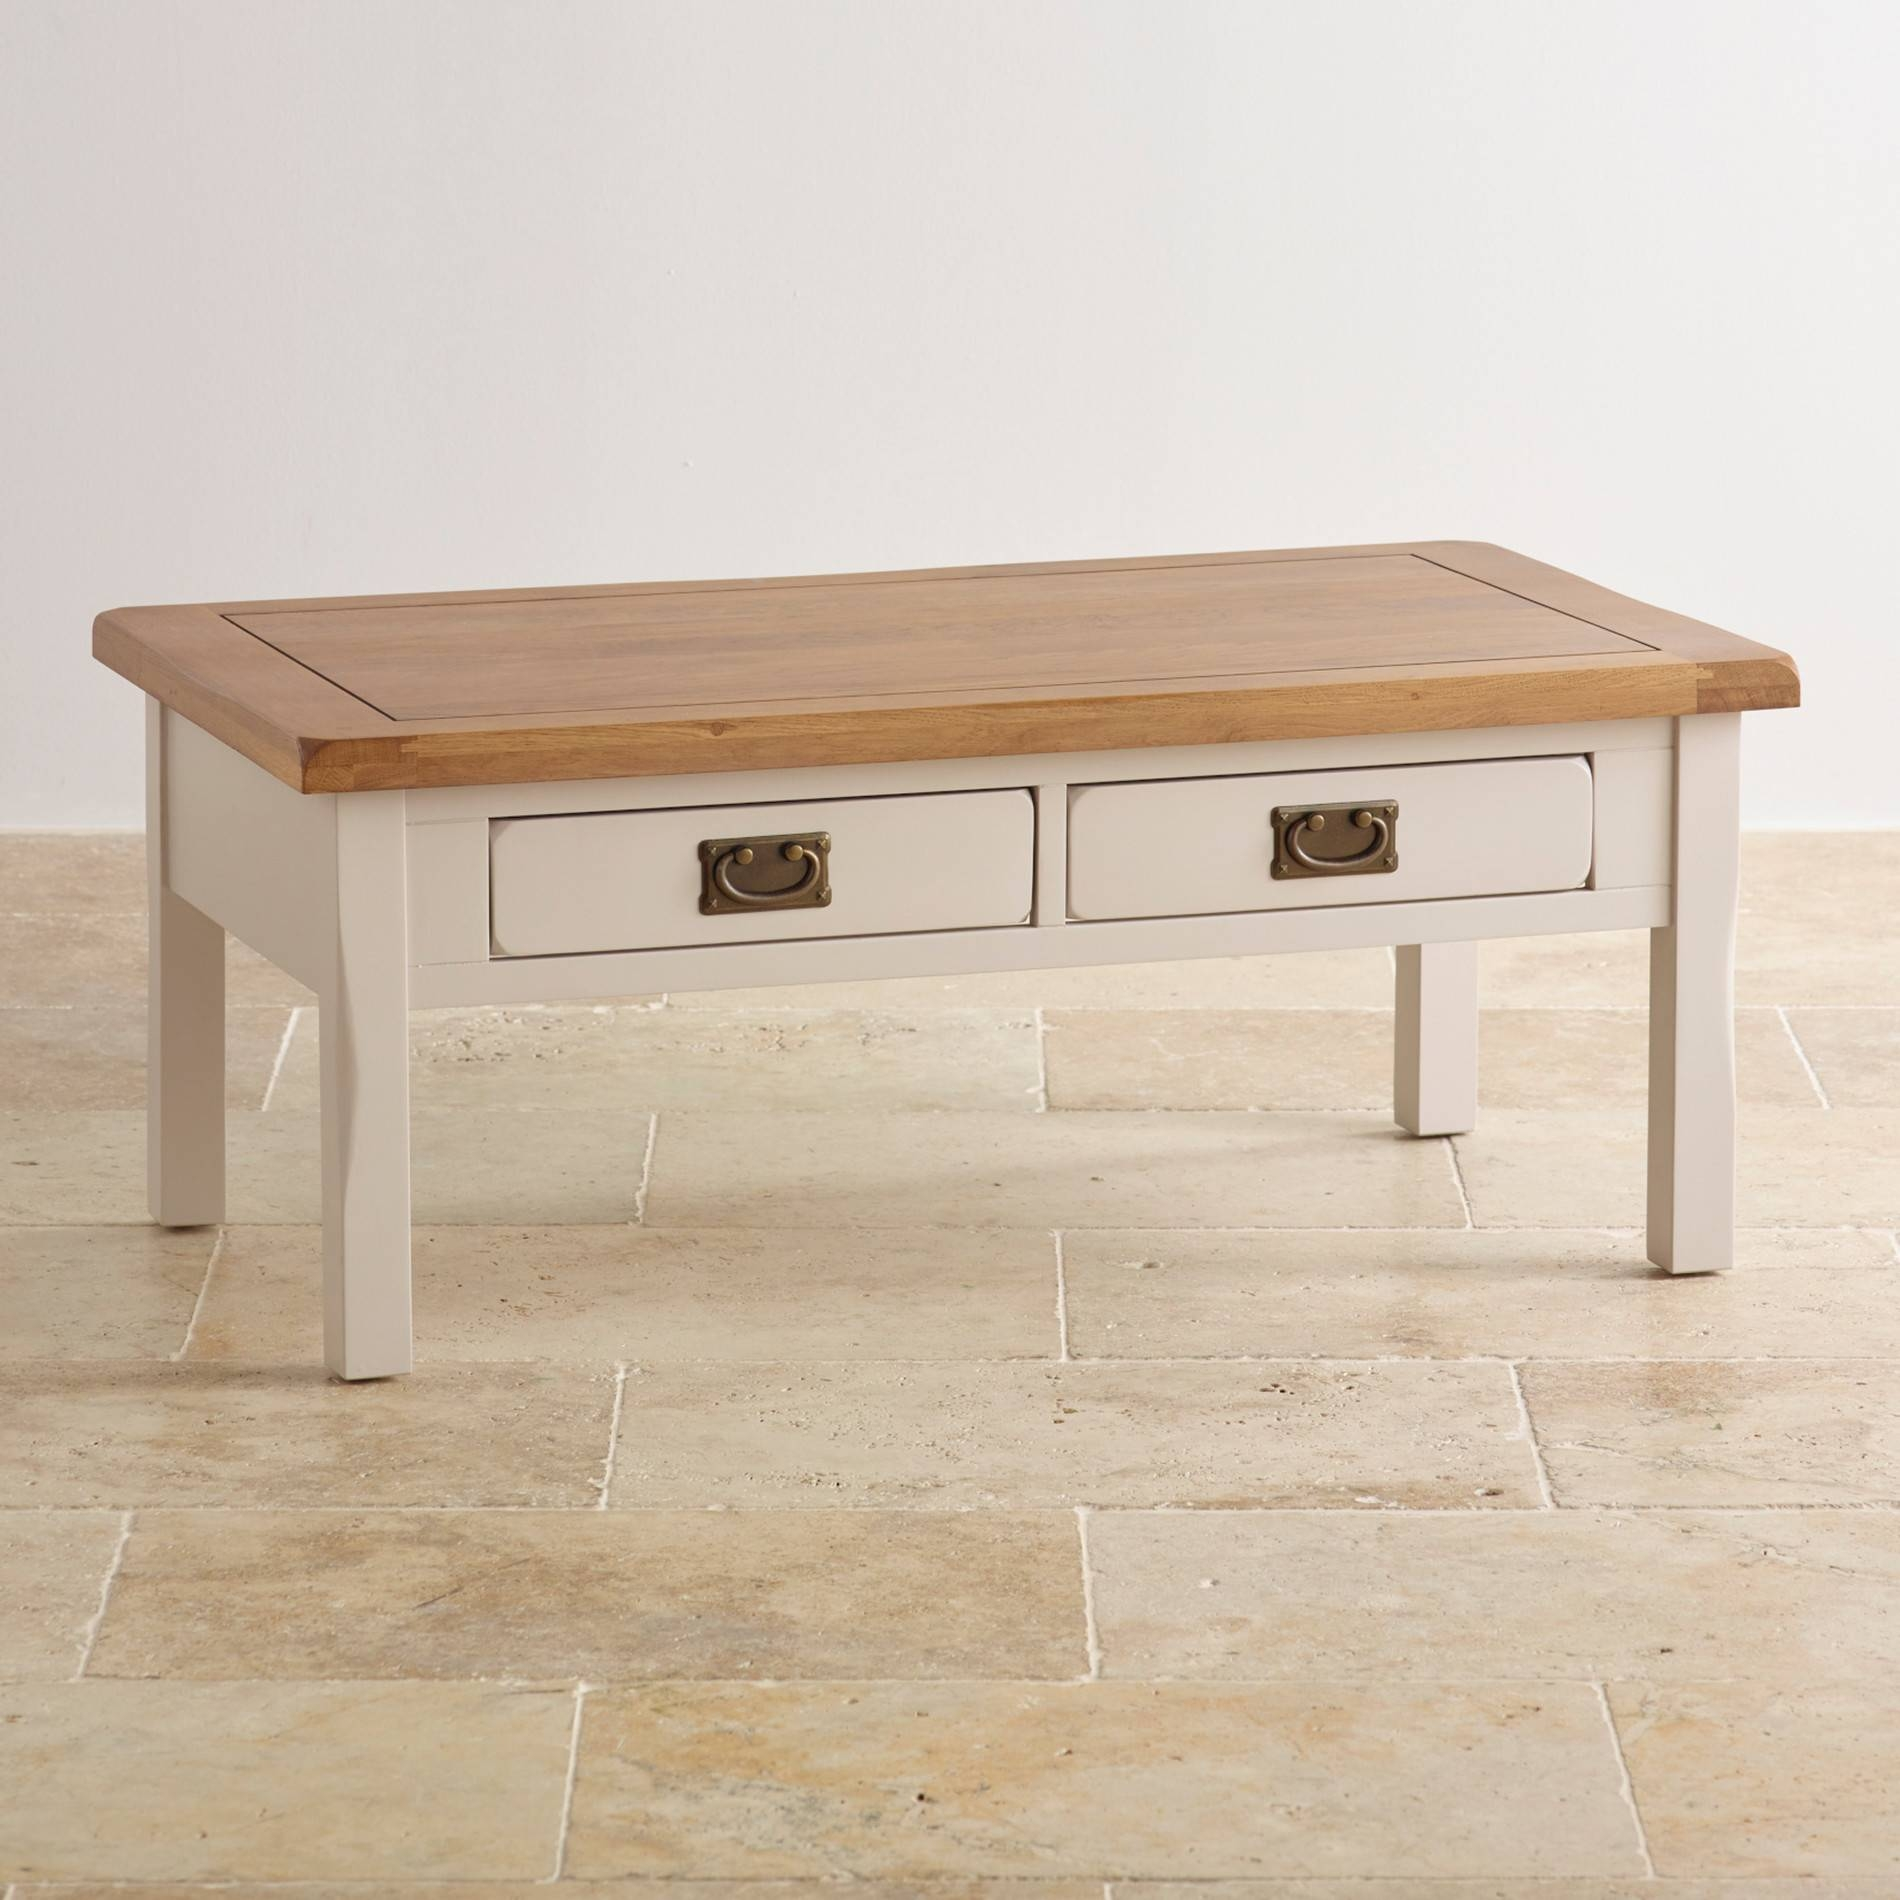 Kemble 4 Drawer Painted Coffee Table In Rustic Solid Oak intended for Solid Oak Coffee Table With Storage (Image 8 of 15)